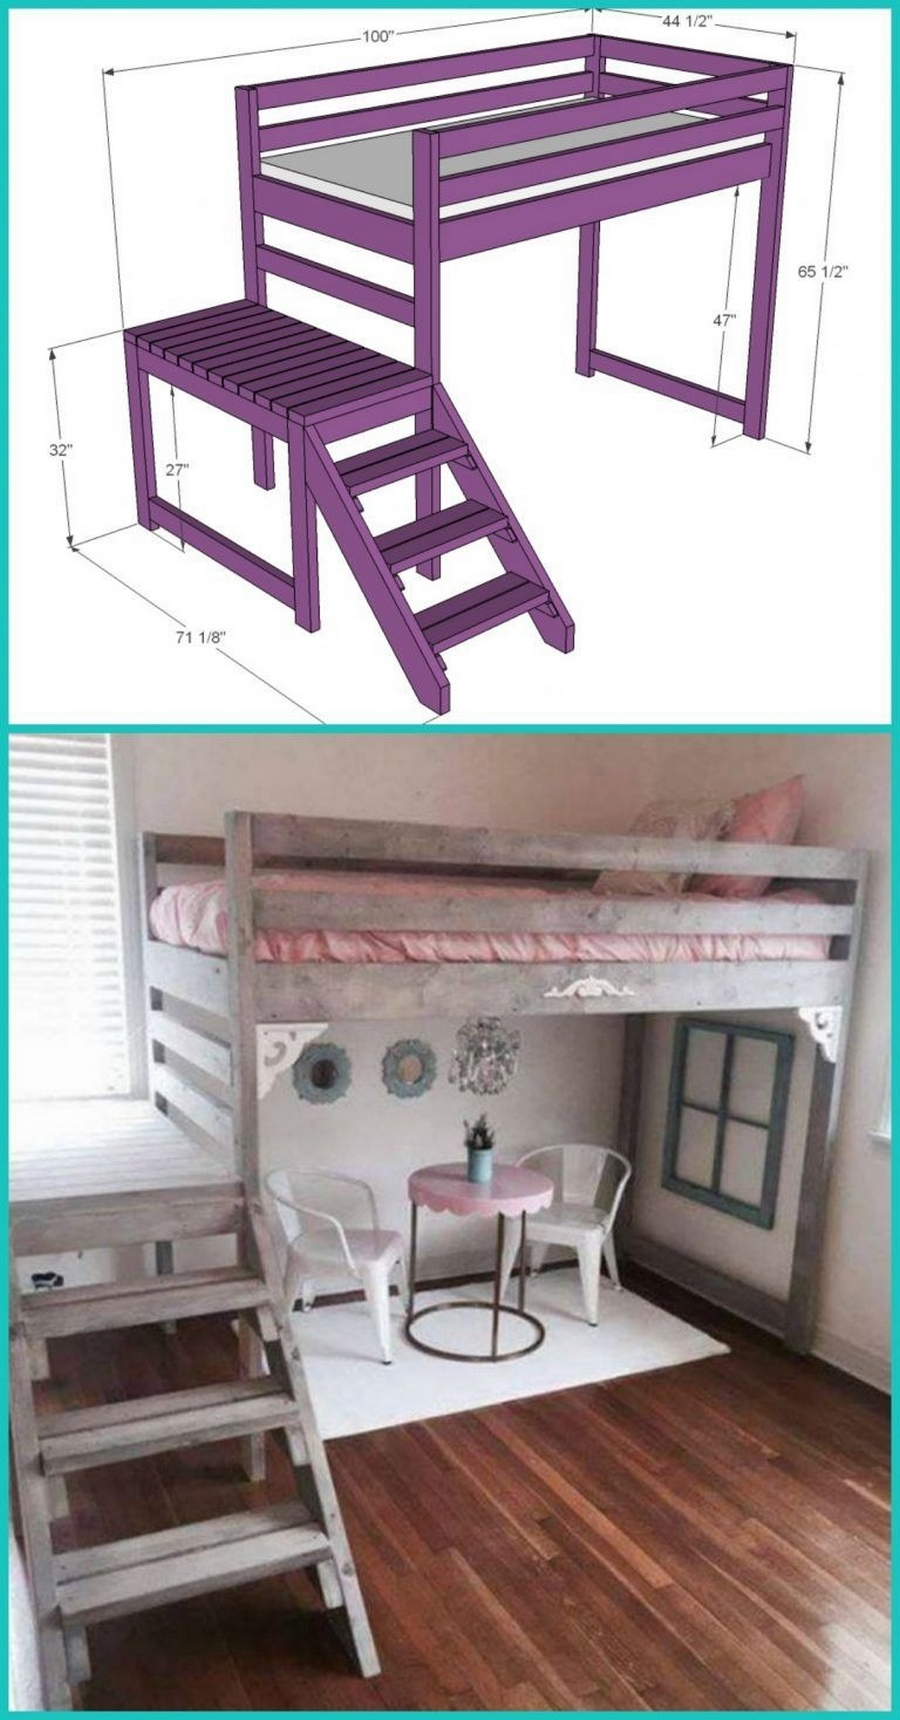 31 Most Popular Kids Bunk Beds Design Ideas Make Sleeping Fun For Your Kids 15